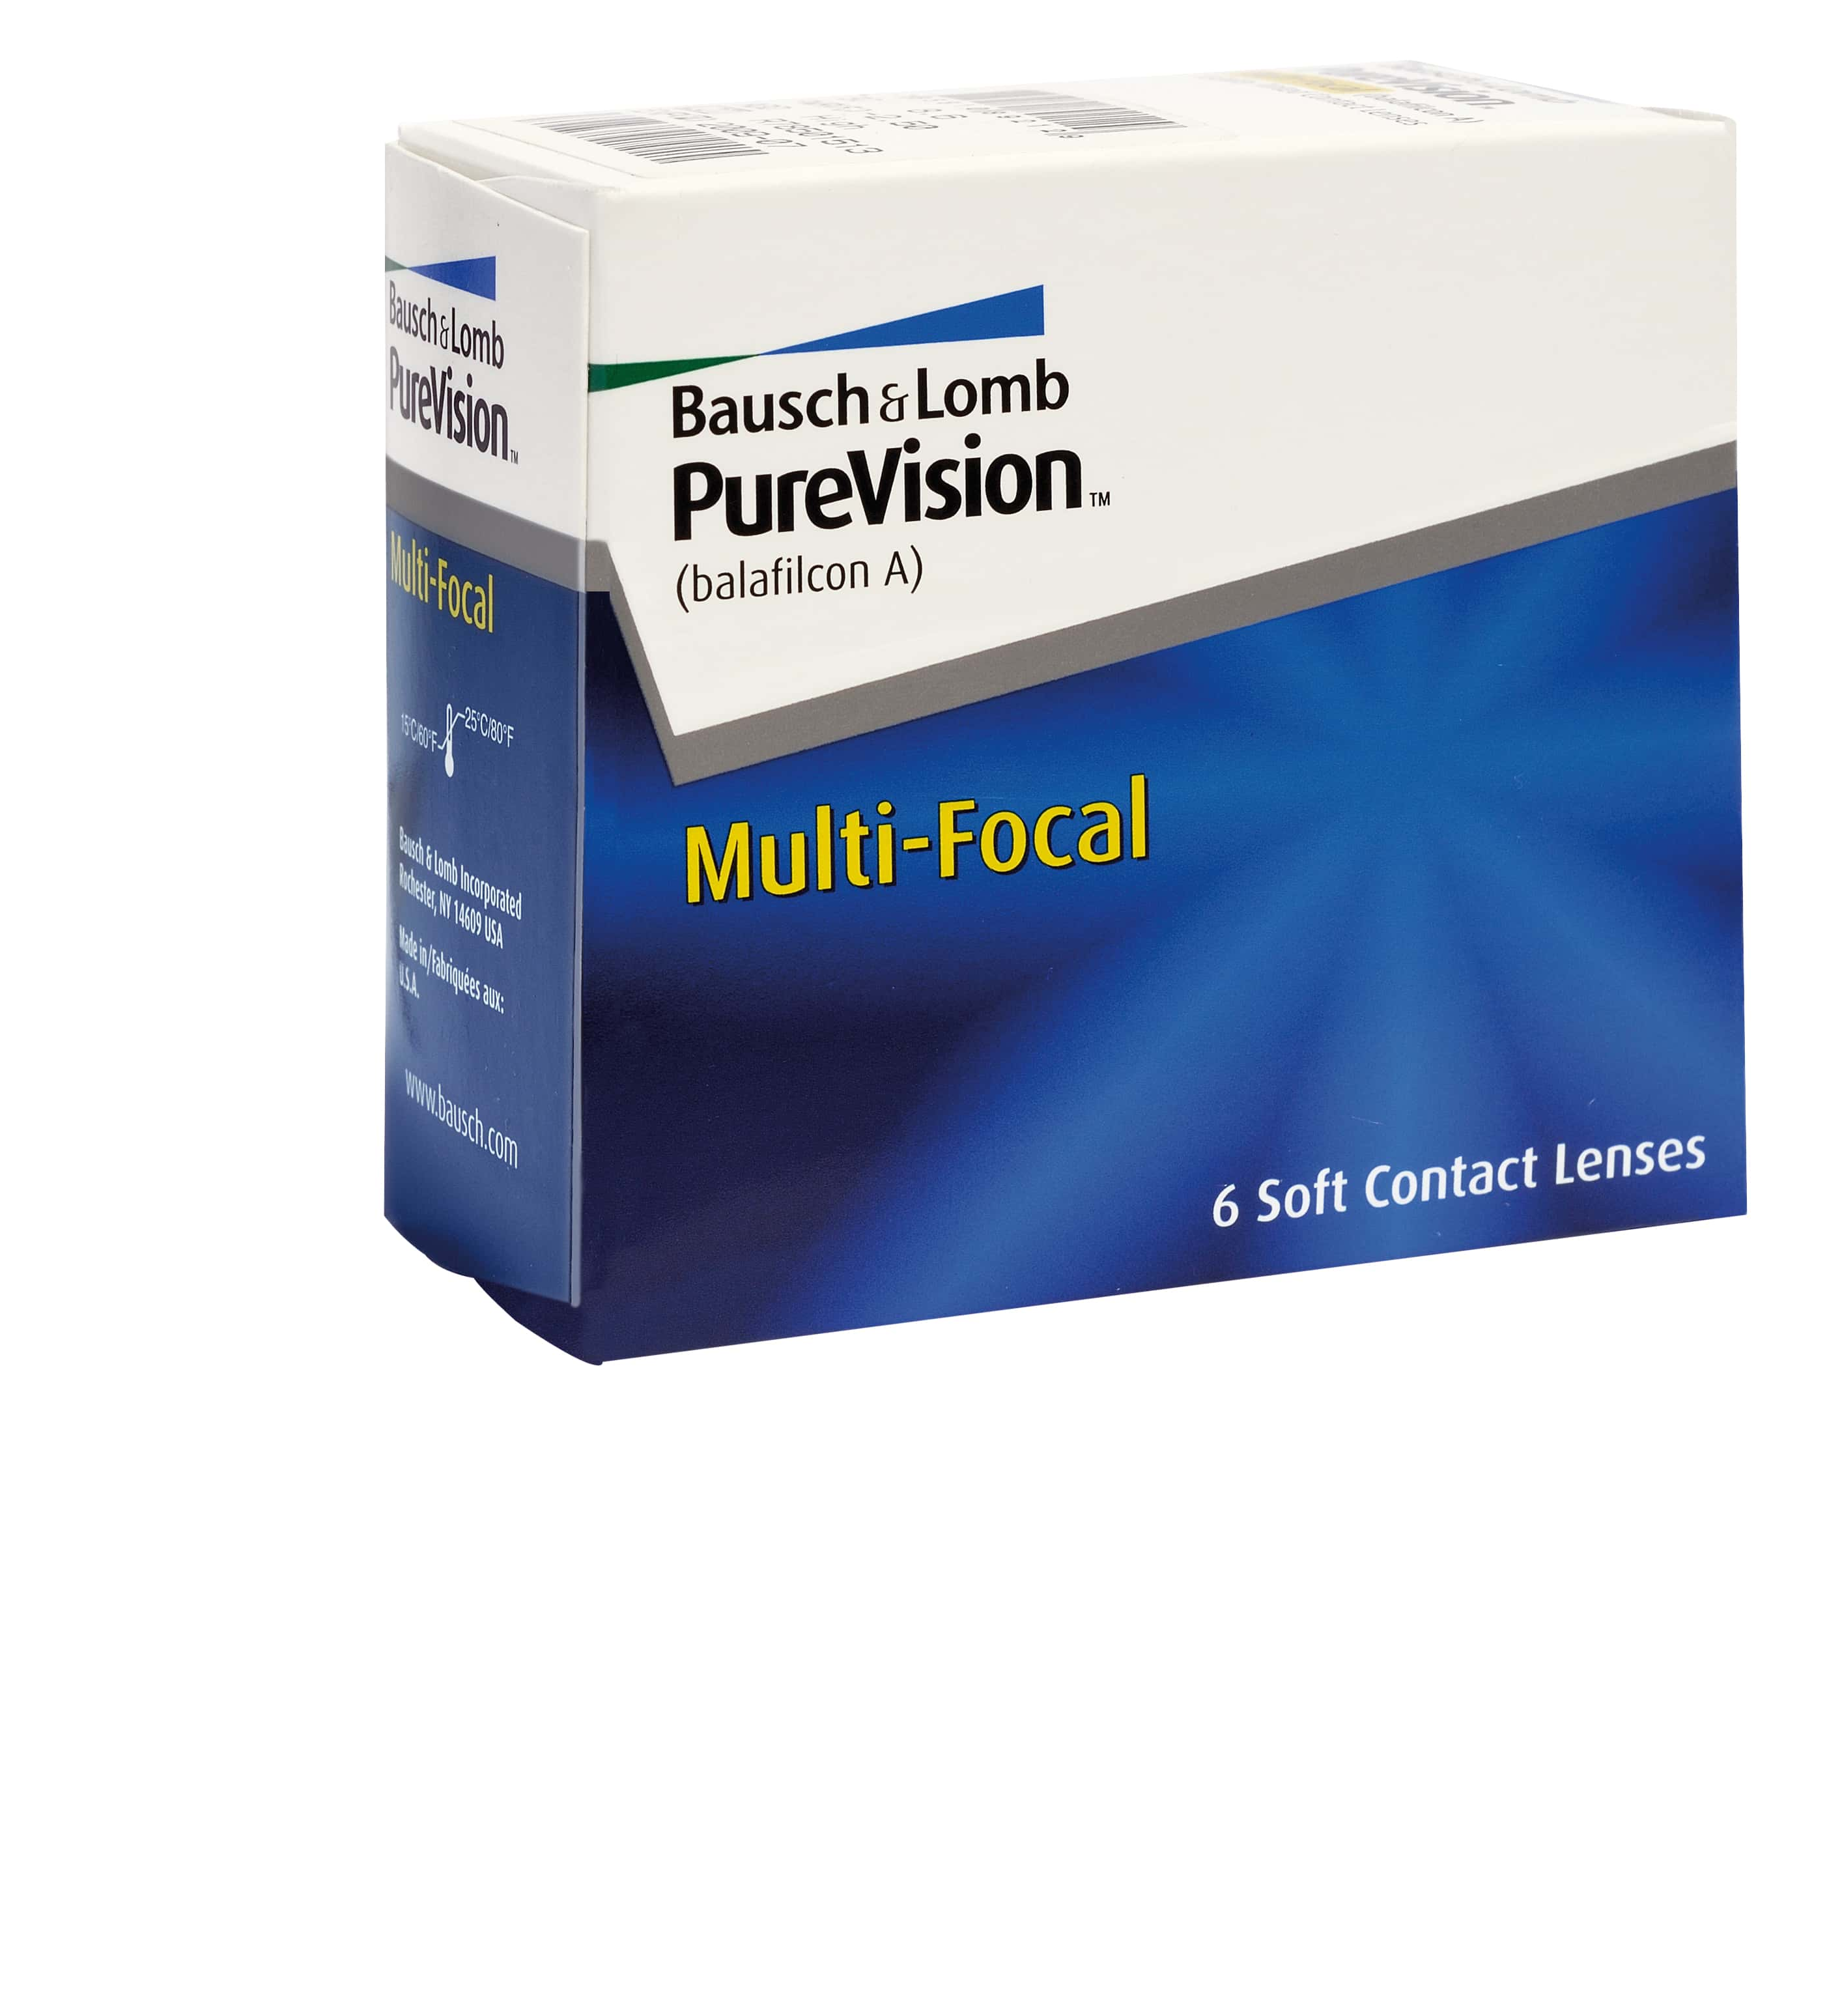 PureVision Multi-Focal Low 6L